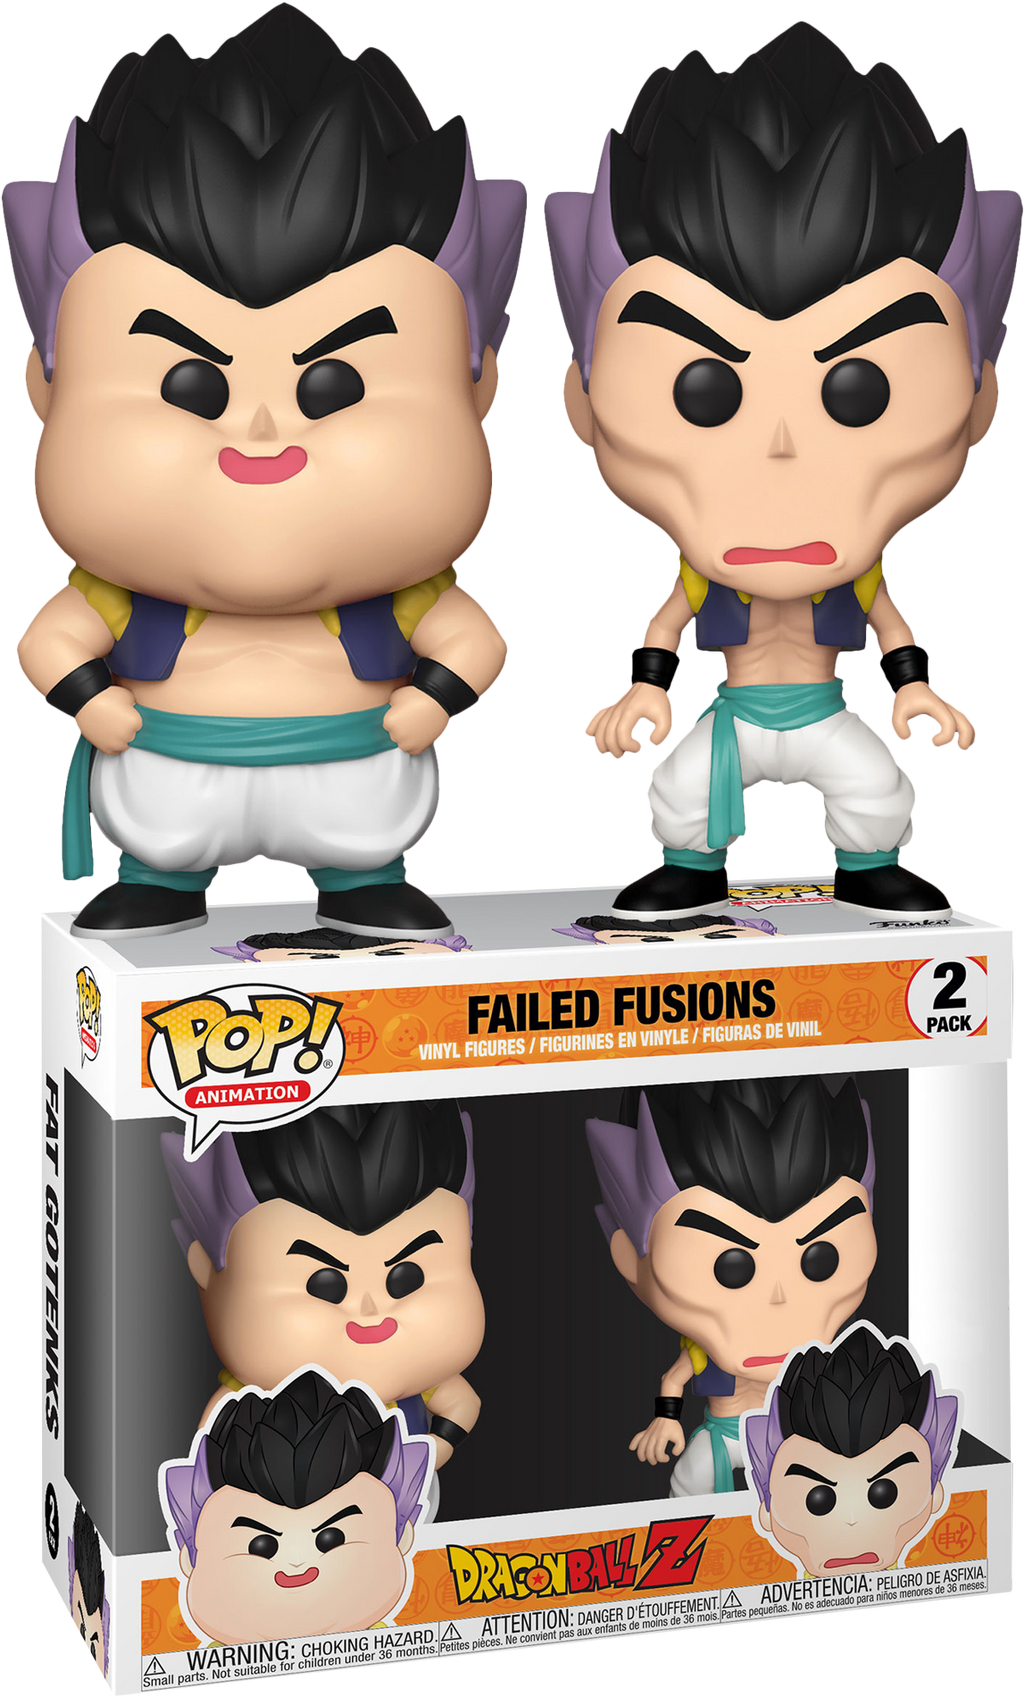 POP! Animation: Dragon Ball Z- Failed Fusion 2-pack (Exclusive) - Sheldonet Toy Store